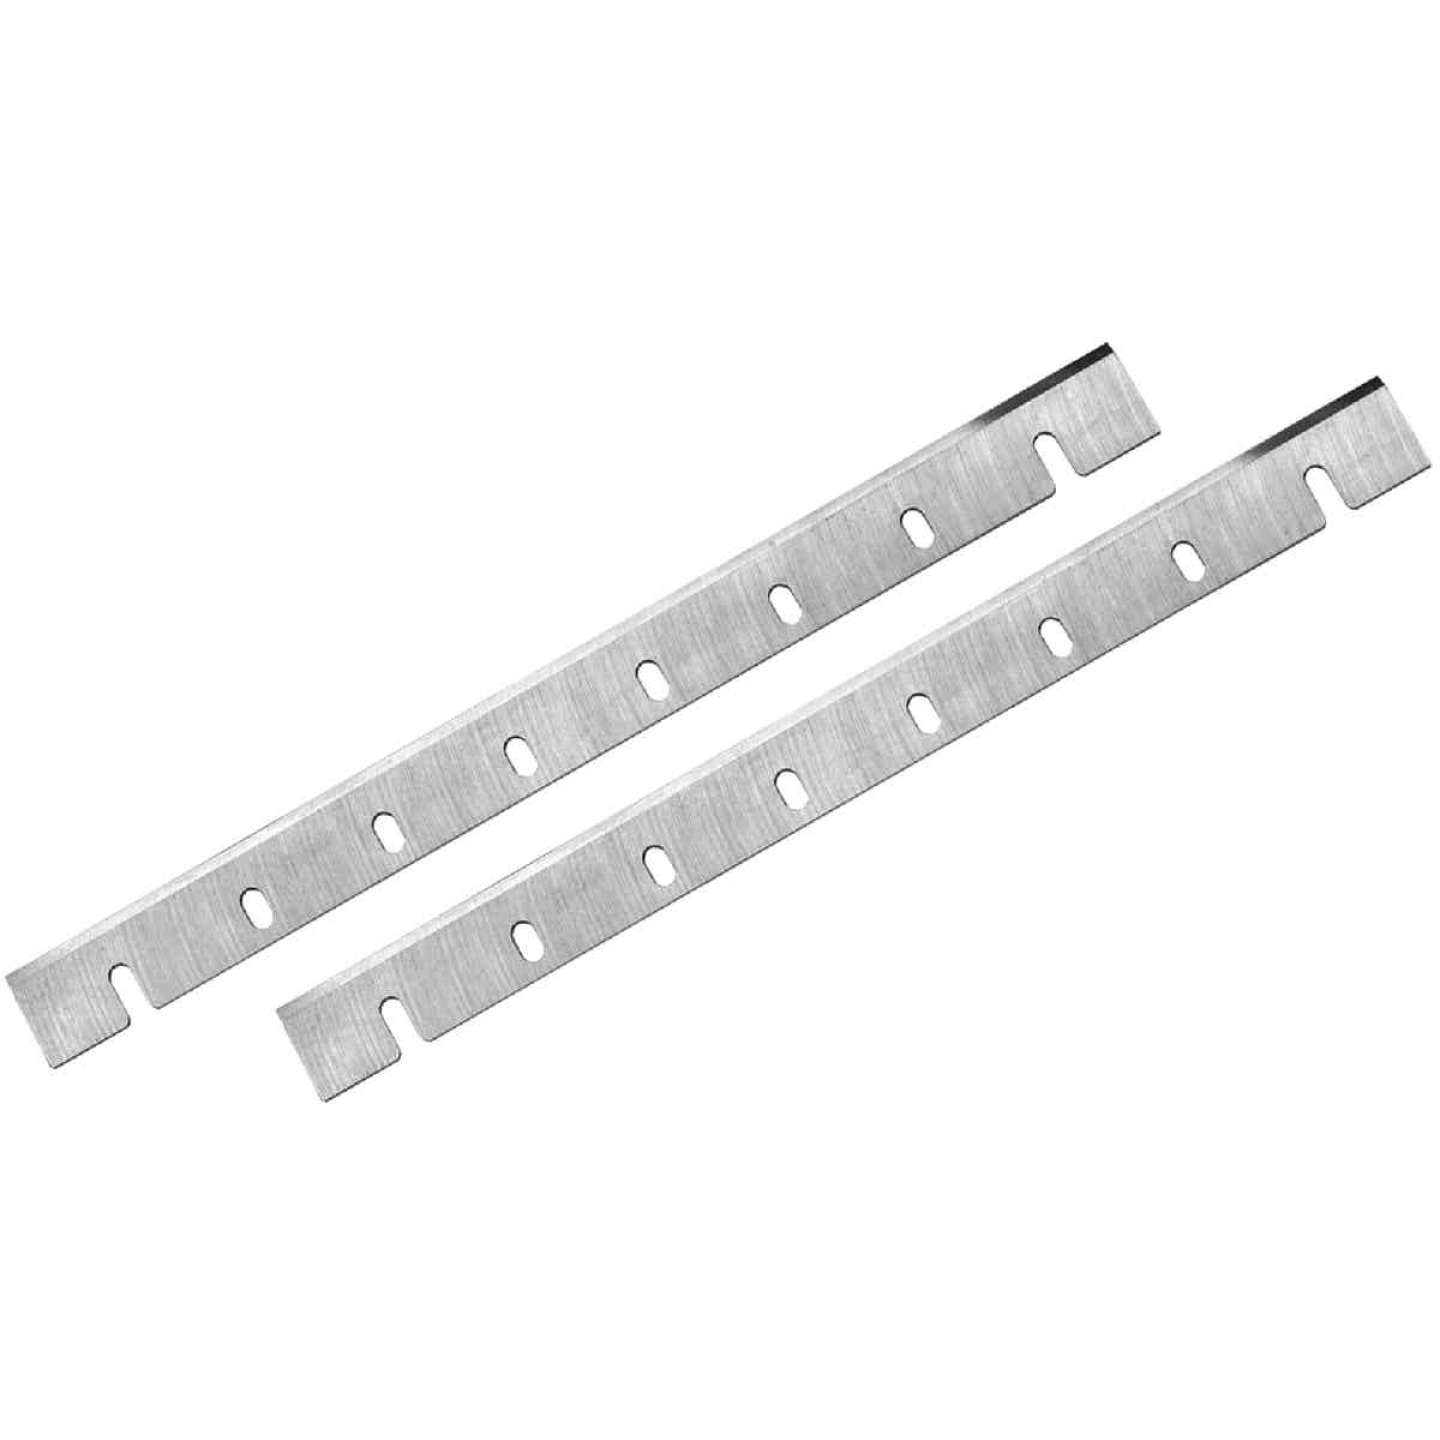 DeWalt 12-1/2 In. High Speed Steel Planer Blade (2-Pack) Image 1